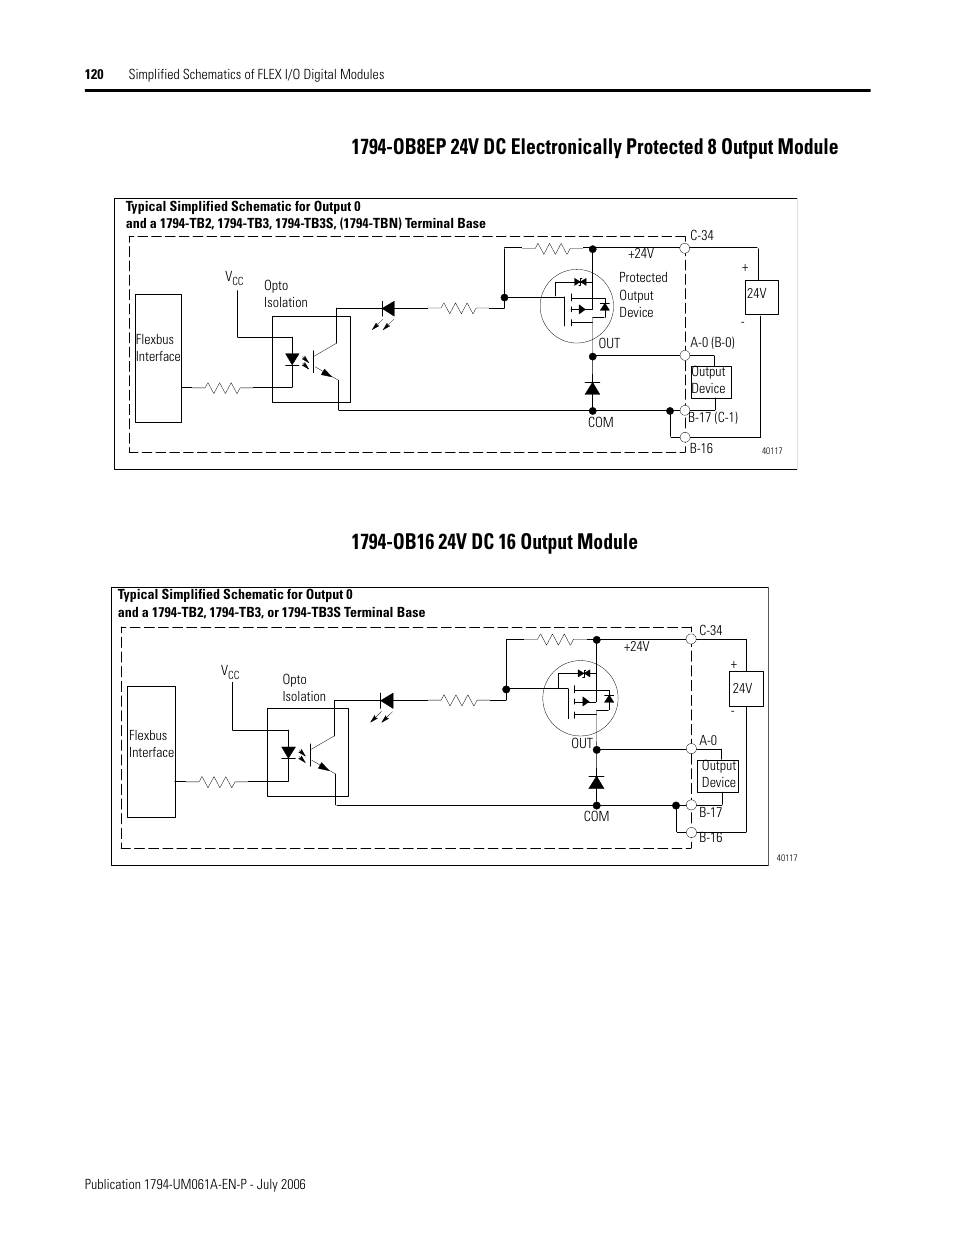 rockwell automation 1794 ob16d flex i_o diagnostic modules user manual page122 1794 ob16 24v dc 16 output module, 120 1794 ob16 24v dc 16 output 1794 ib16 wiring diagram at mifinder.co